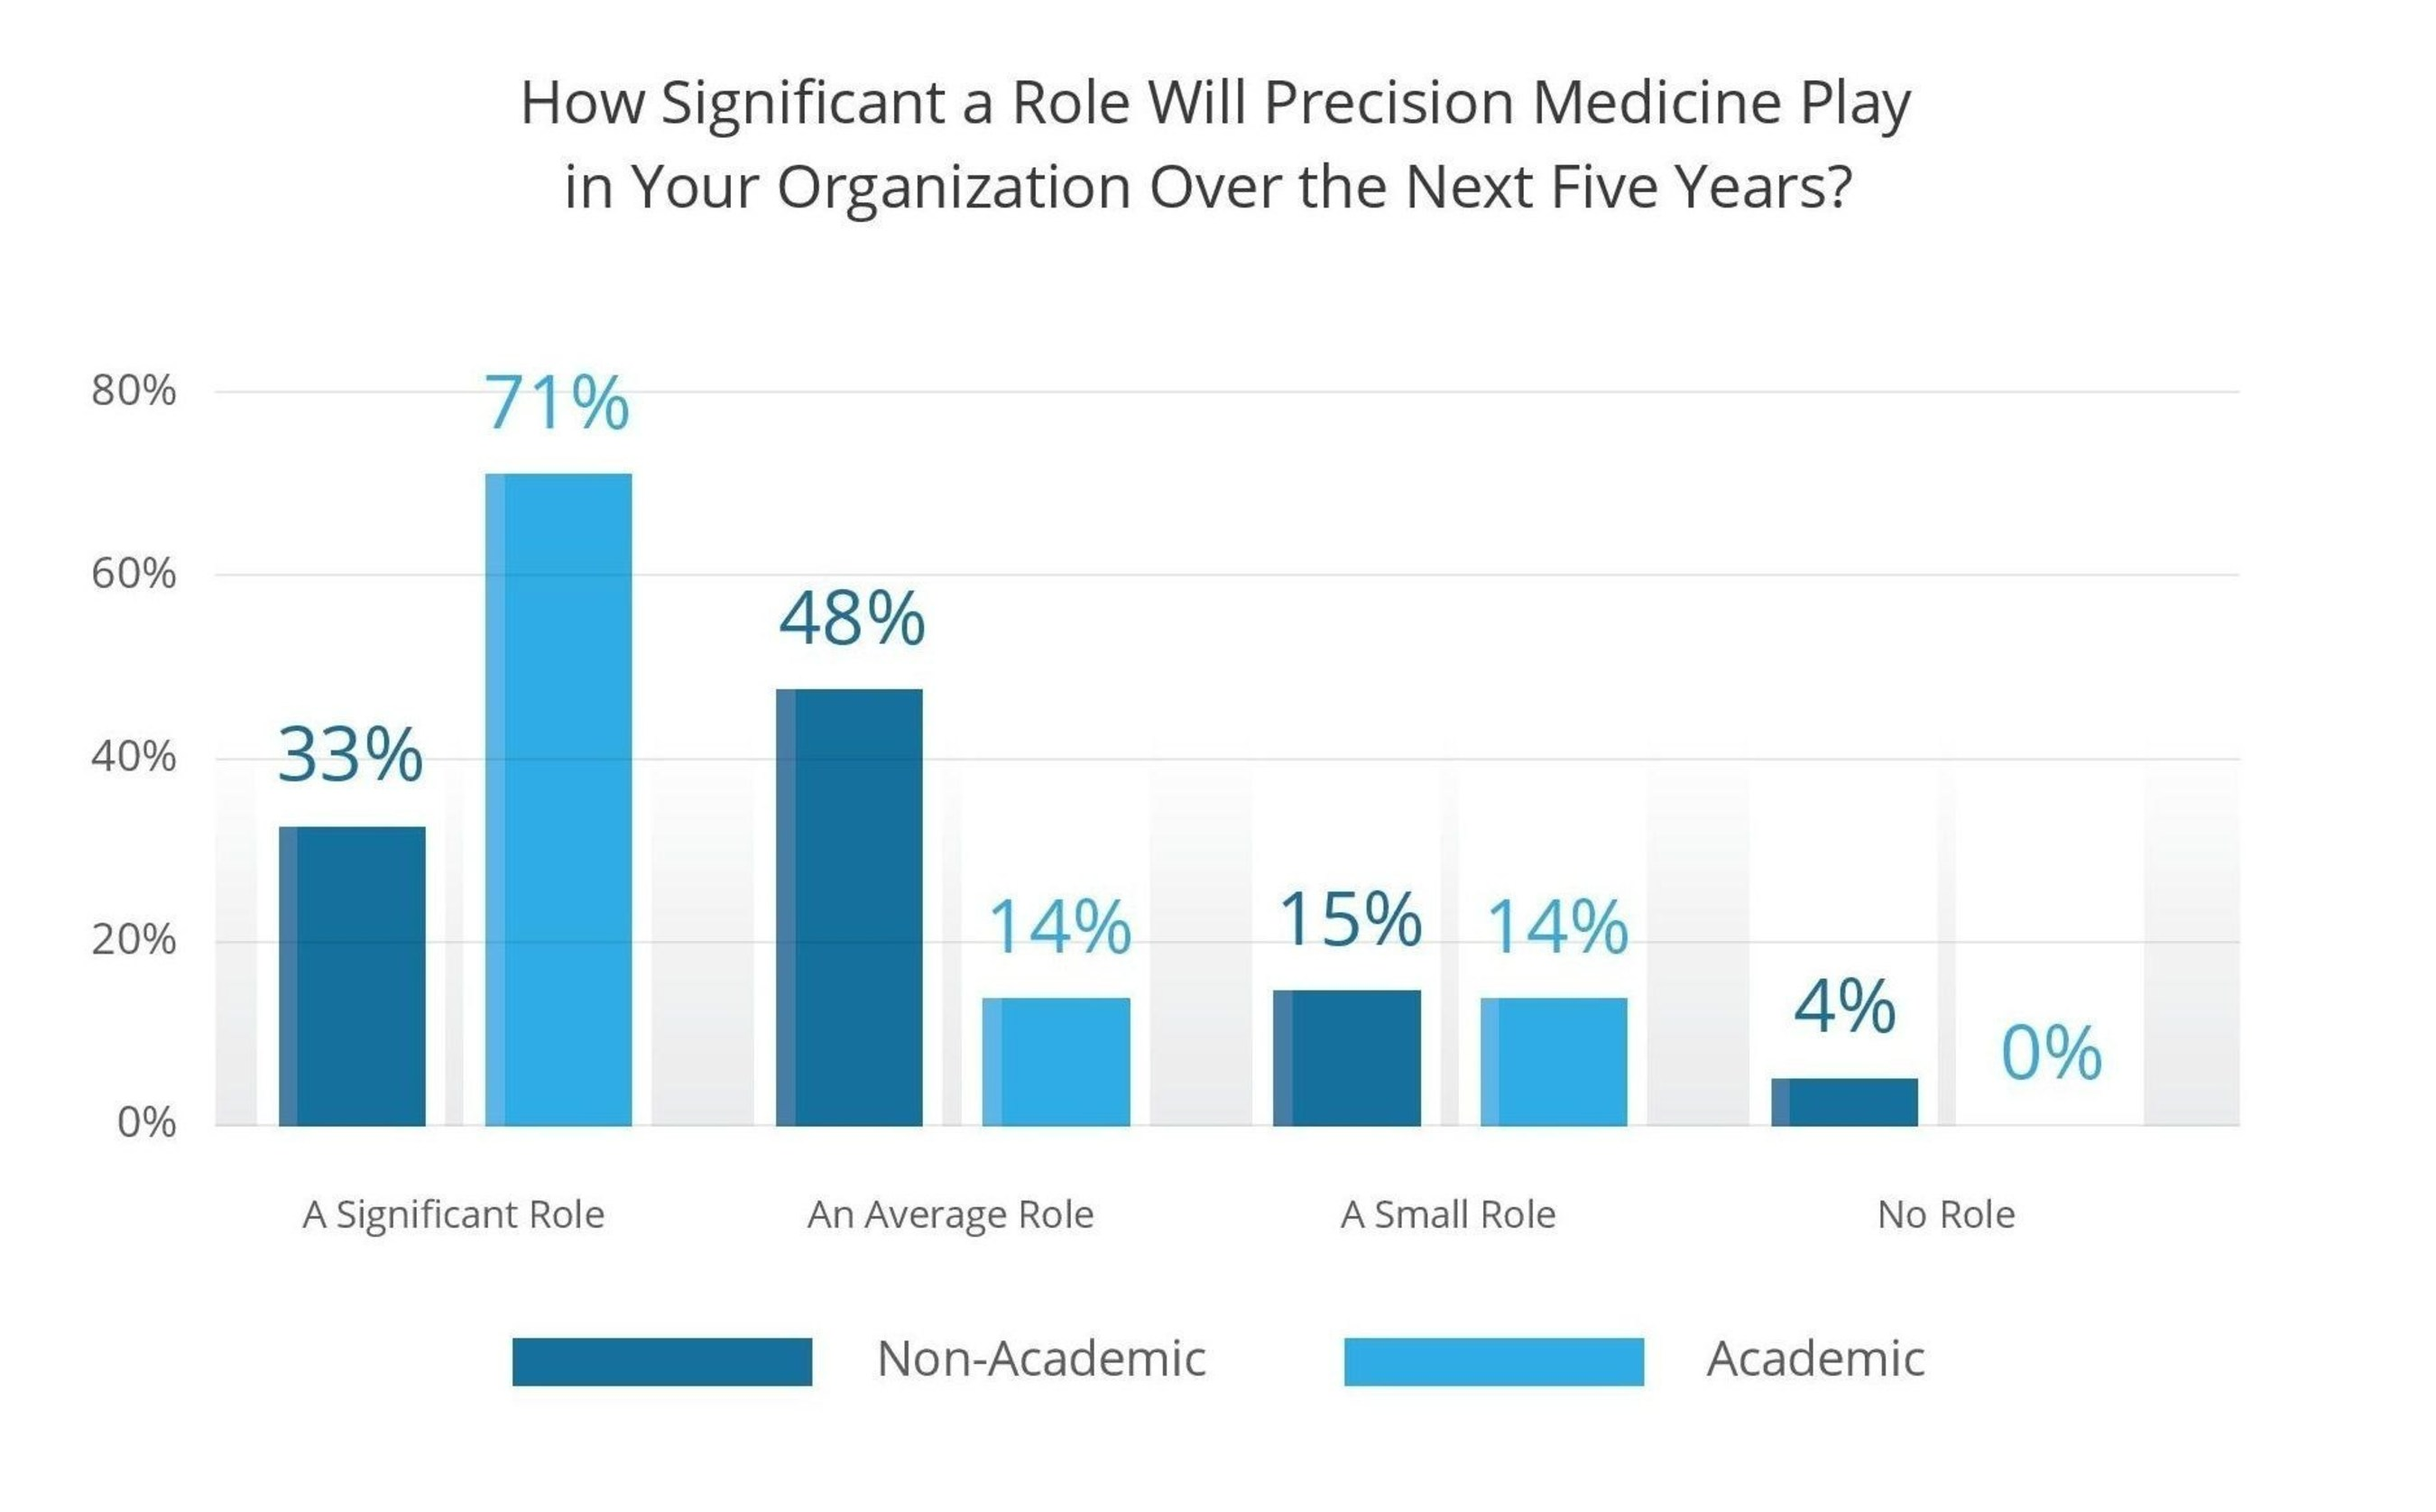 How Significant a Role Will Precision Medicine Play in Your Organization Over the Next Five Years?